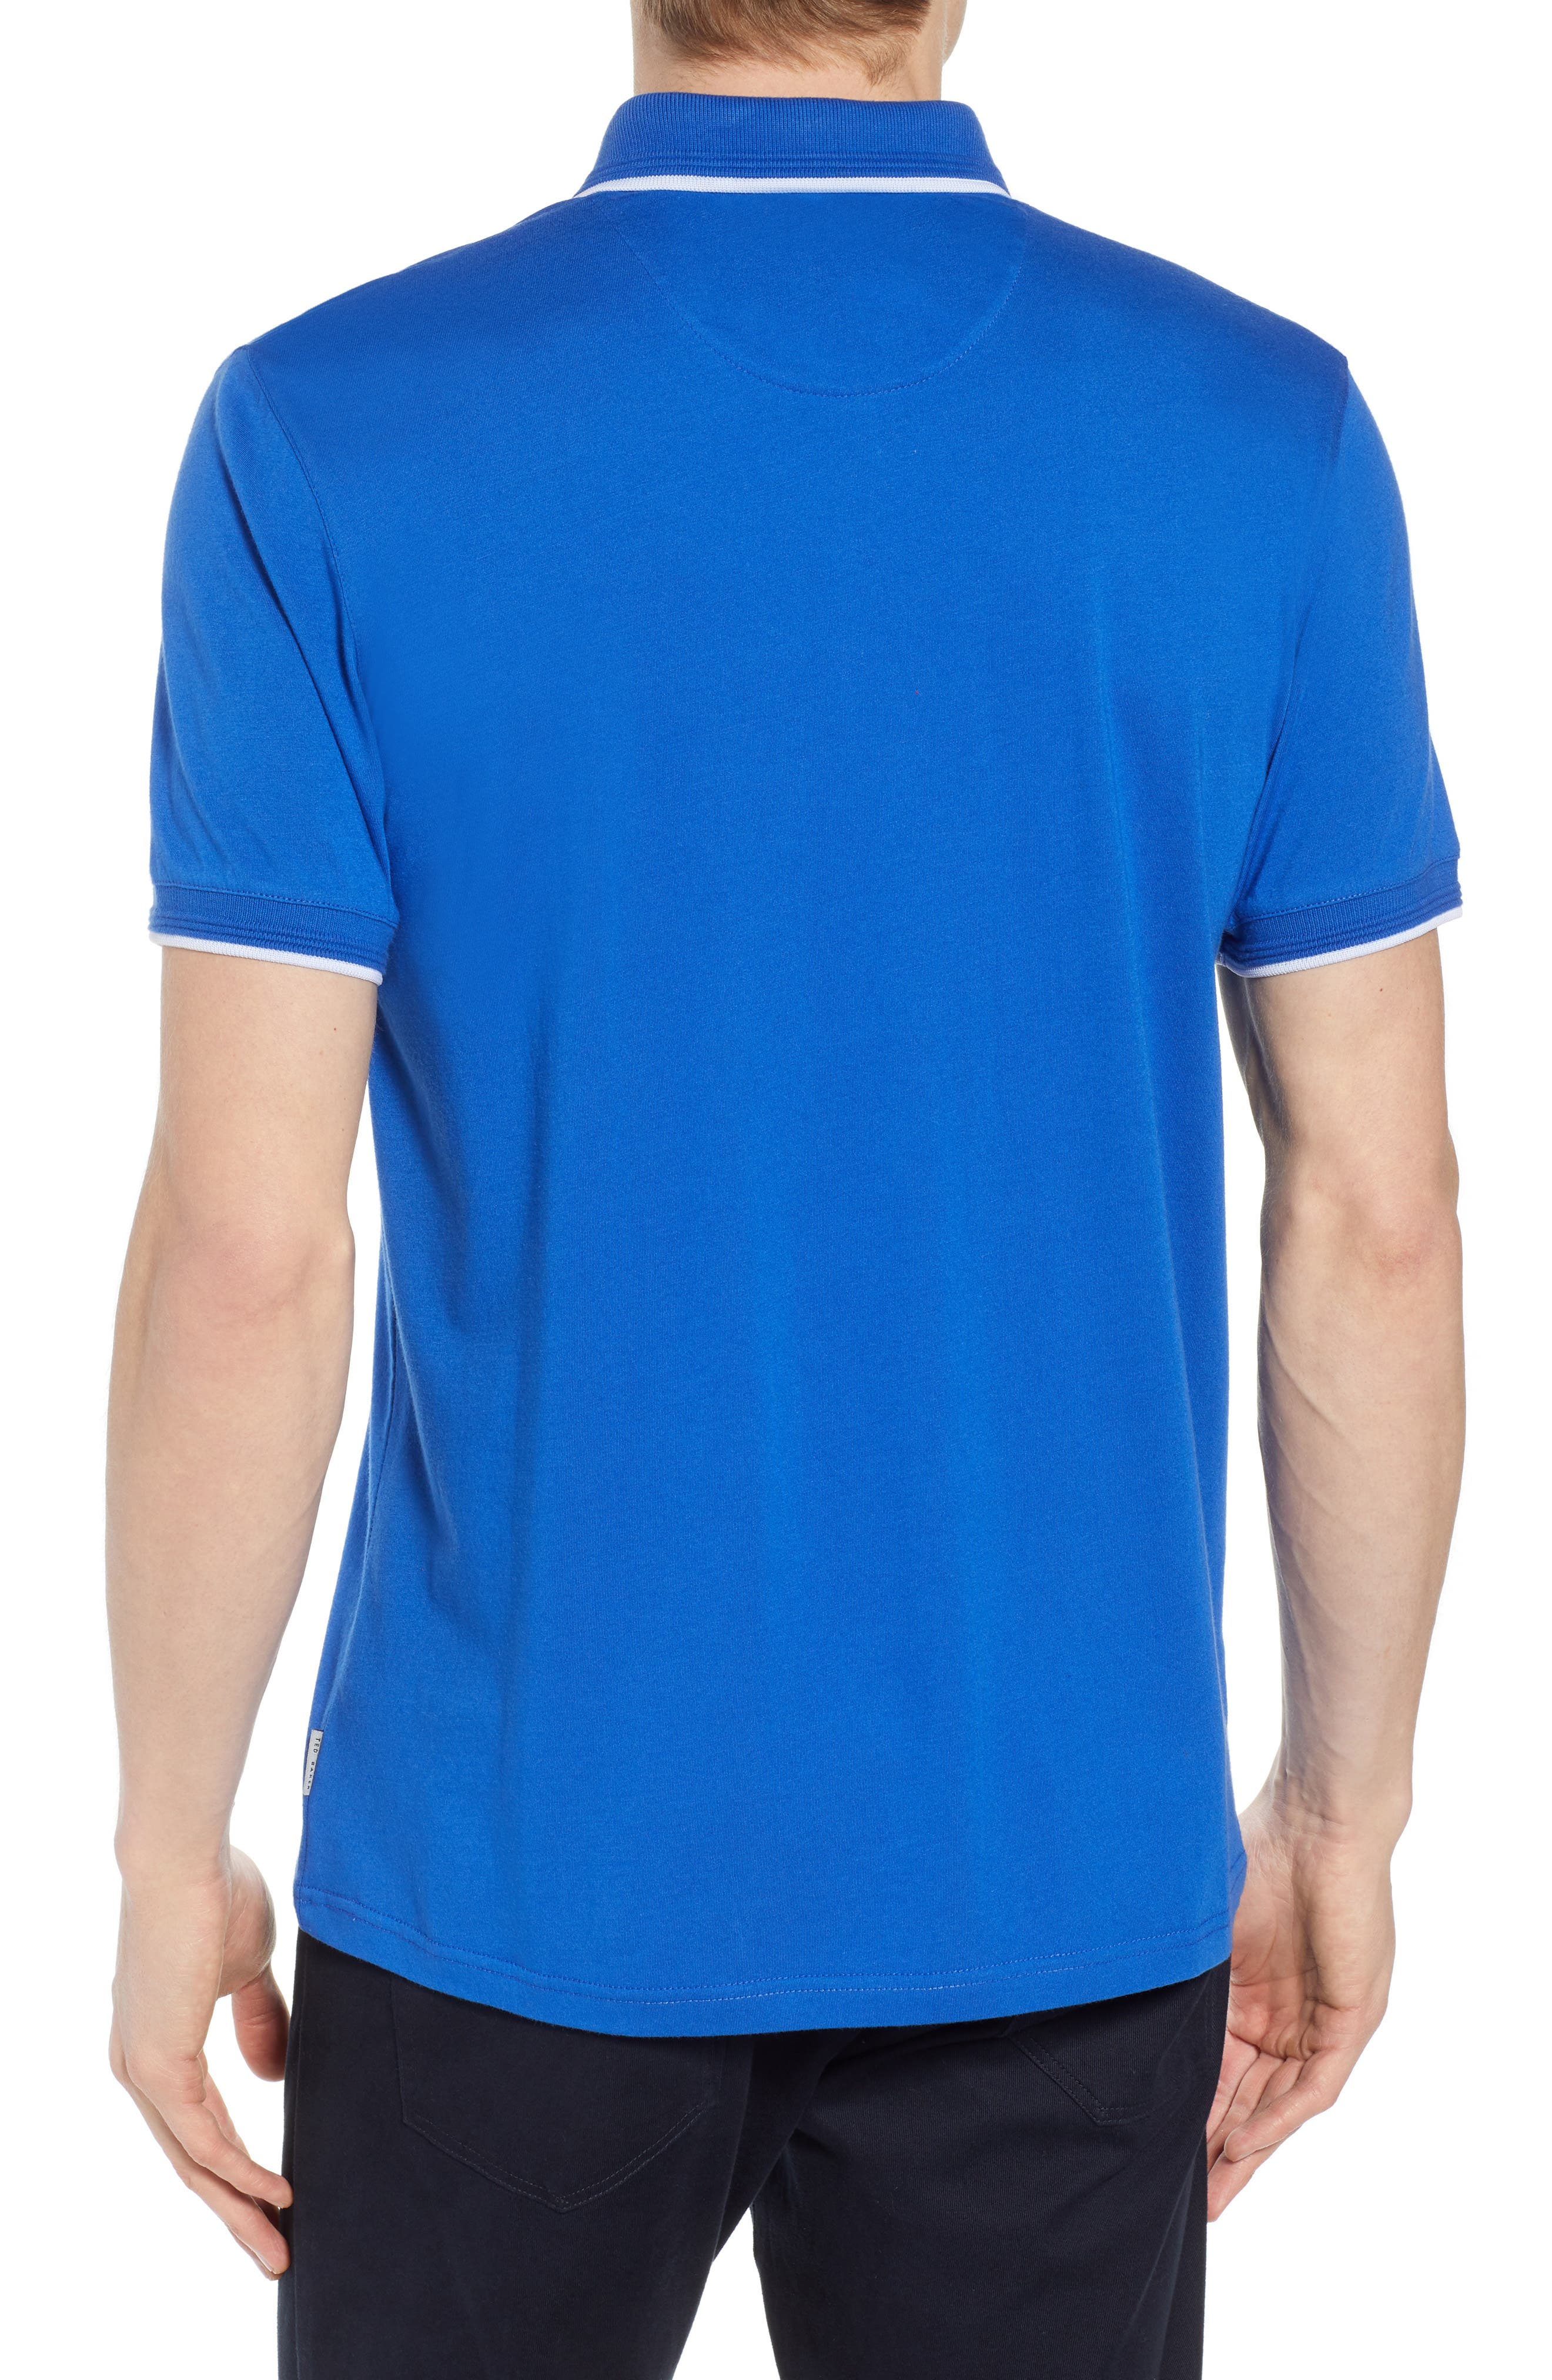 Derry Modern Slim Fit Polo,                             Alternate thumbnail 2, color,                             BRIGHT BLUE